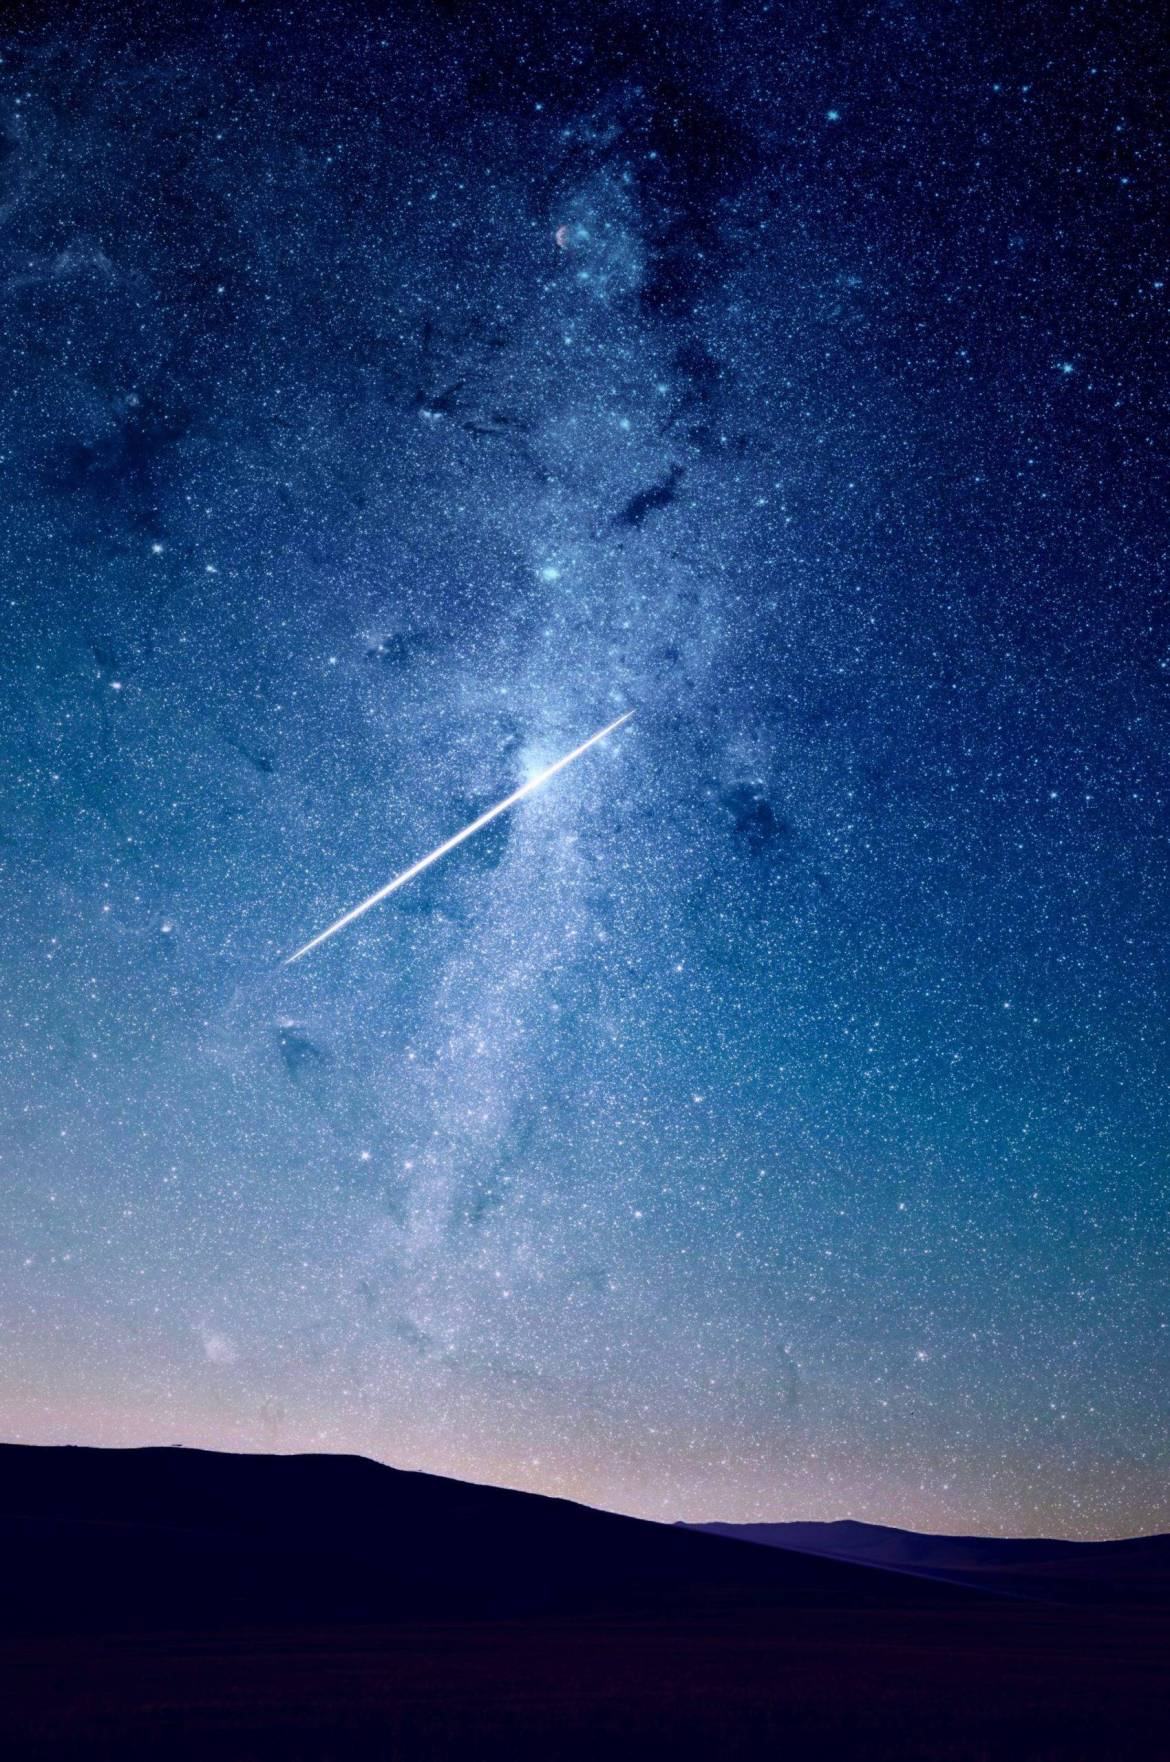 Spotting a meteor in a starry night sky is a summer activity that you should make sure not to miss out on. #summer #stargazing #stars #meteors